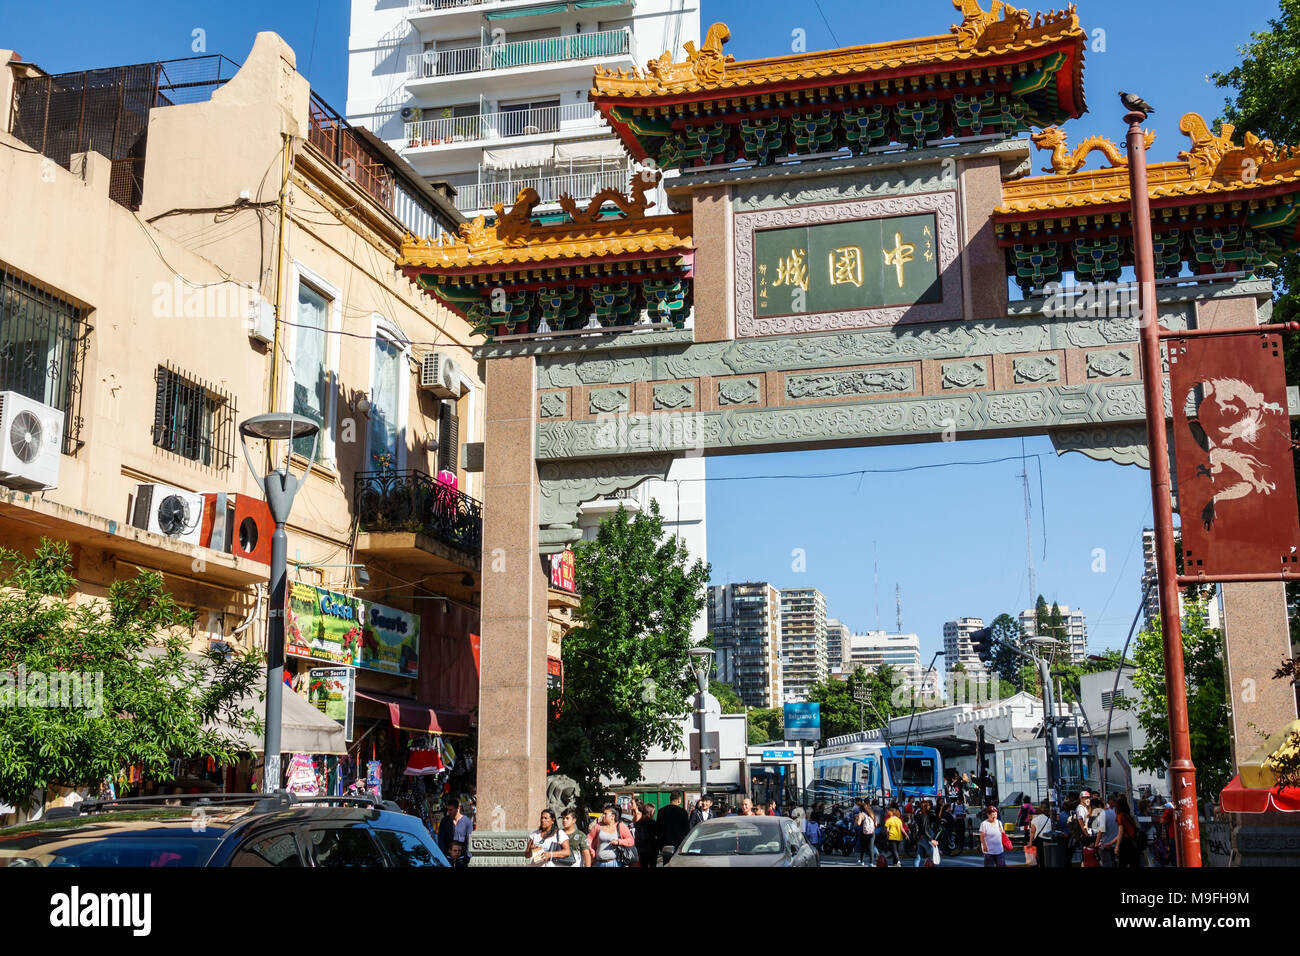 Buenos Aires Argentina Belgrano China Town Barrio Chino Chinatown ethnic neighborhood Paifang gate Chinese architectural arch Hispanic Argentinean Arg Stock Photo